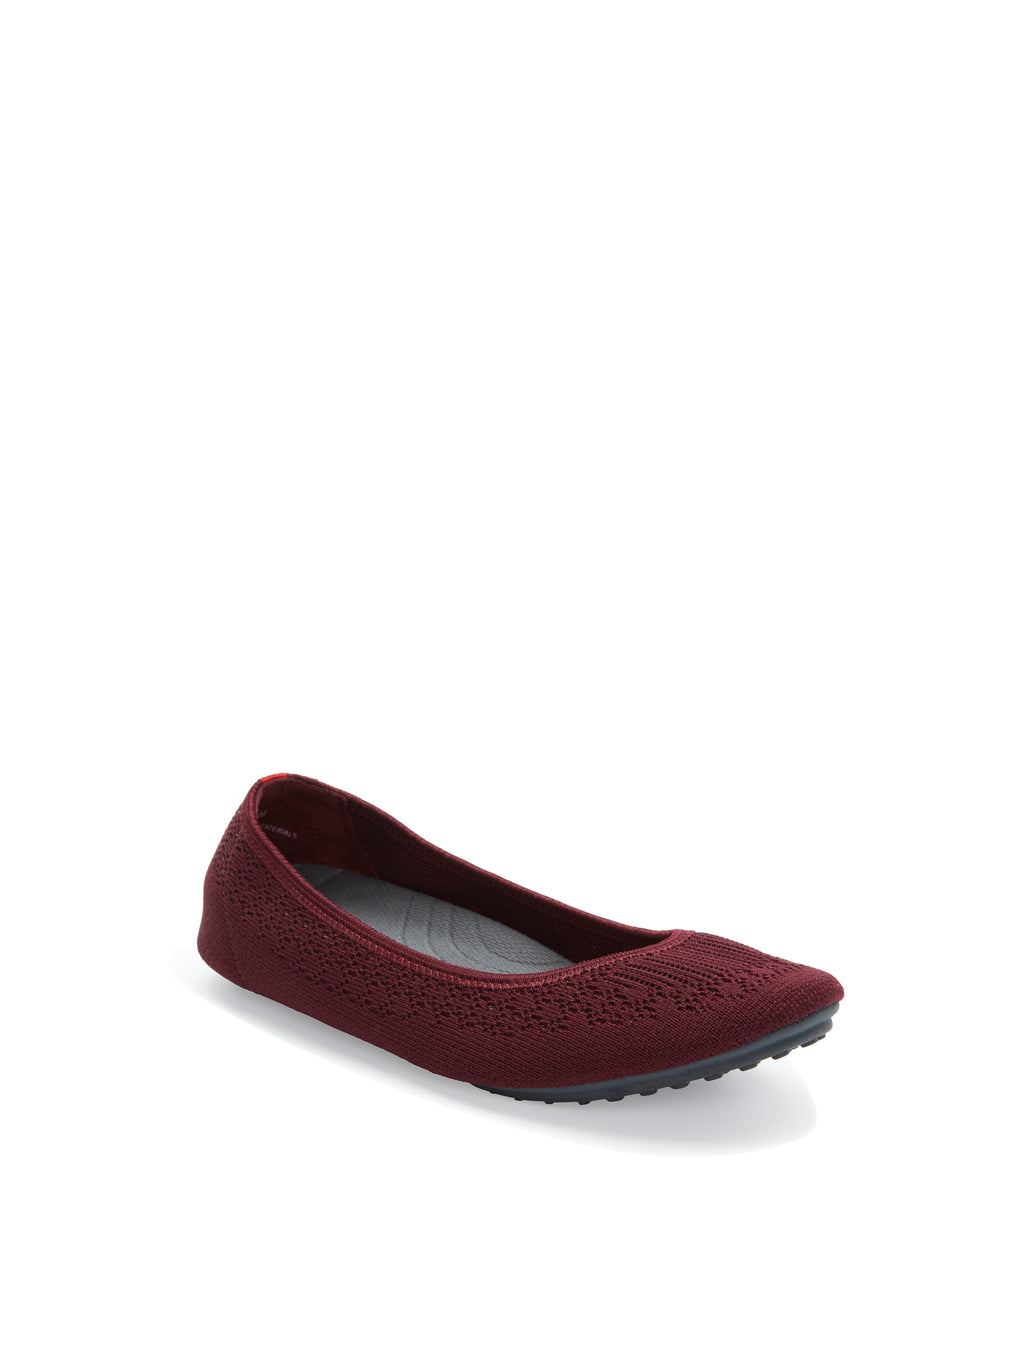 Kaila Burgundy Knit -  SNEAKER - Adam Tucker